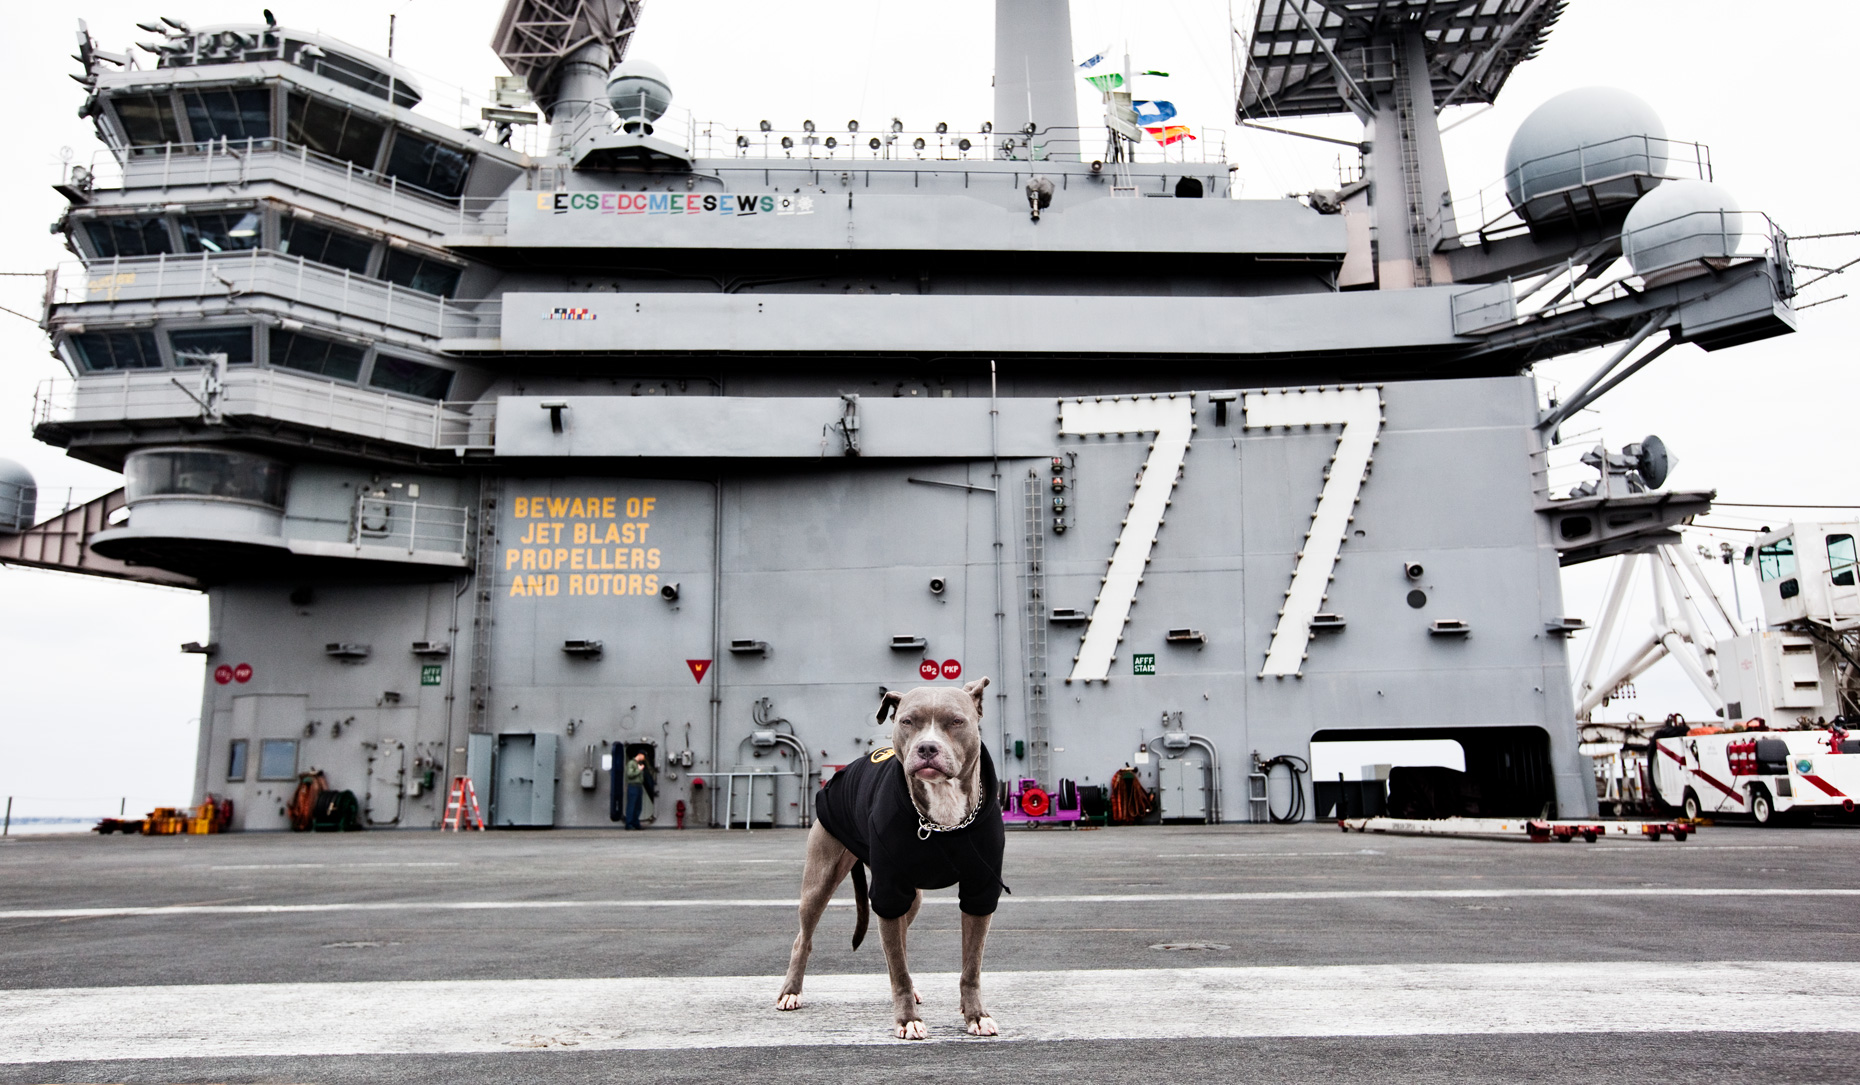 Los Angeles Dog Photography, Michael Brian, Pit Bull on deck of USS George HW Bush, Blue Nose Pit Bull Kasha Fierce on nuclear-powered aircraft carrier